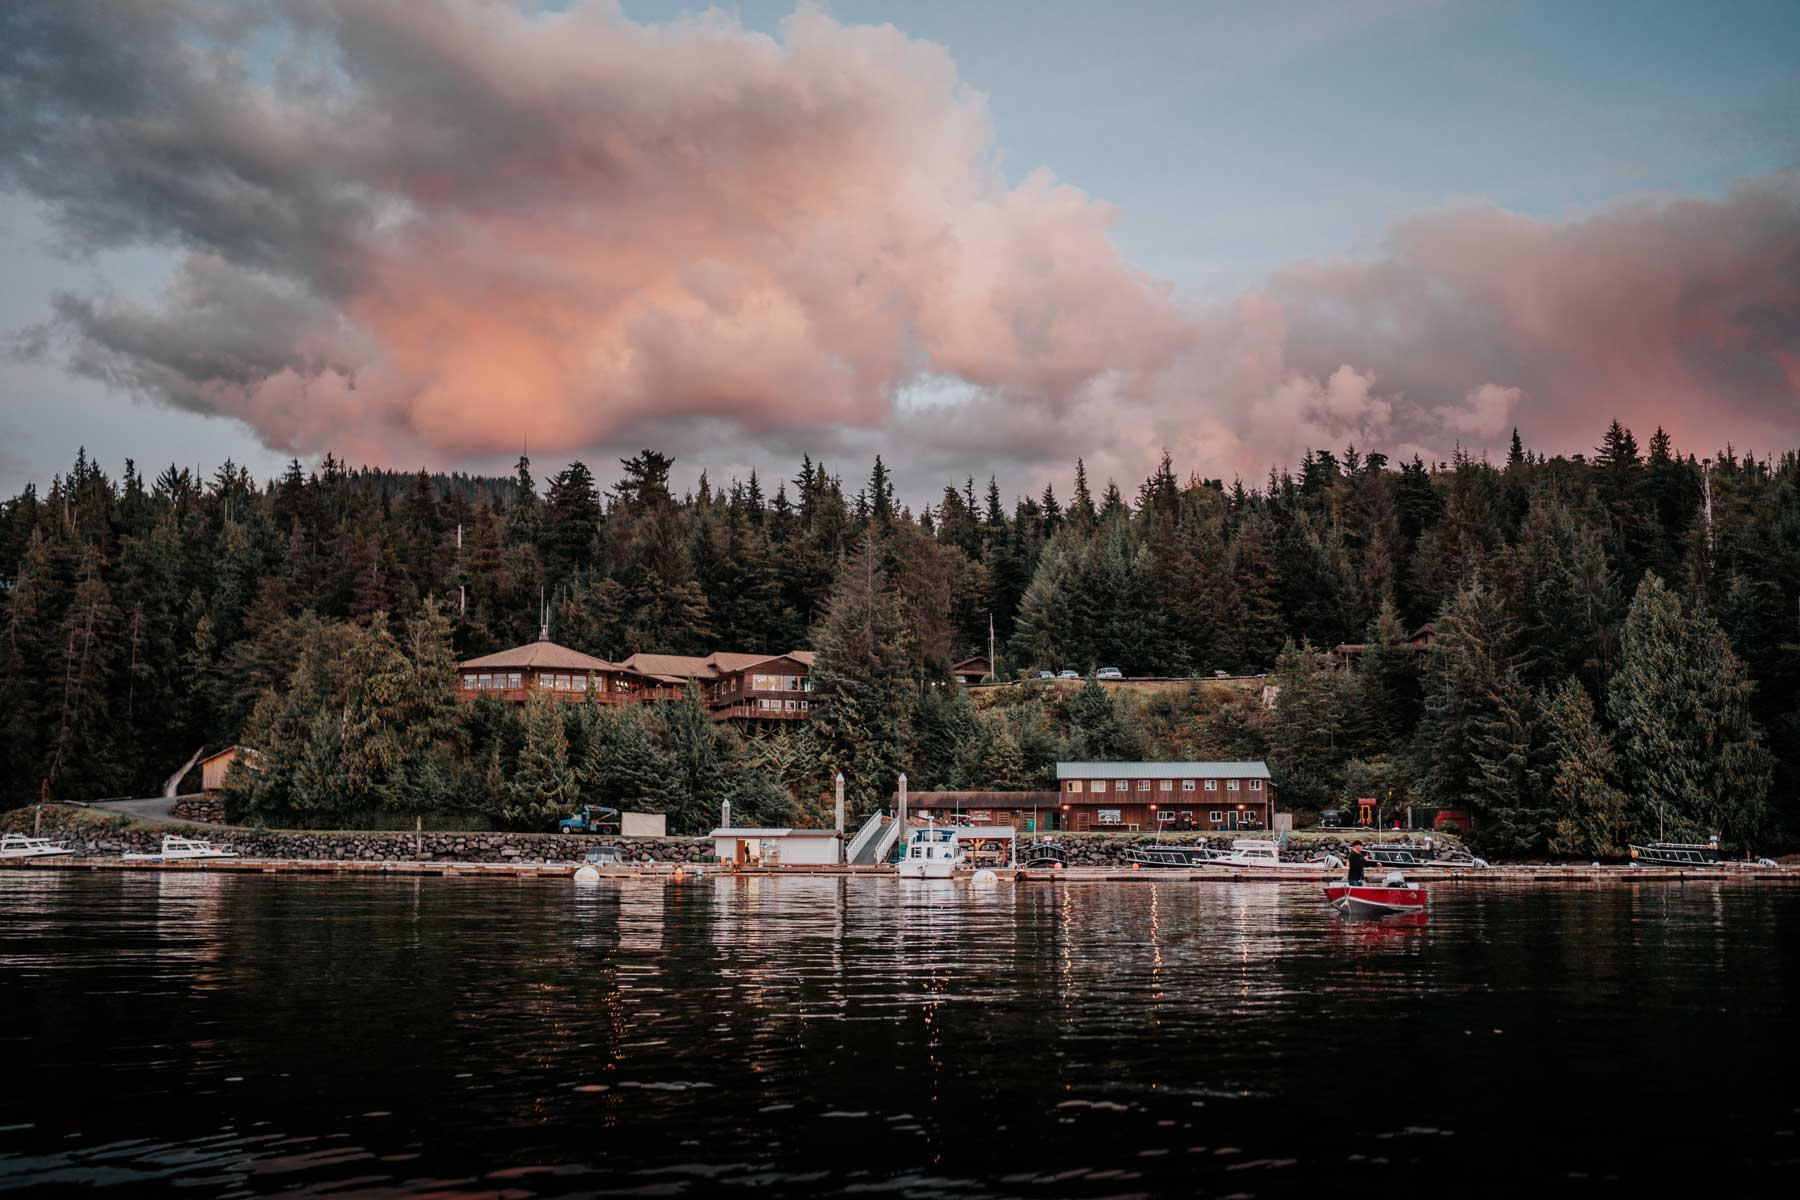 Exterior view of Salmon Falls resort in Alaska from the water, surrounded by tall pine trees